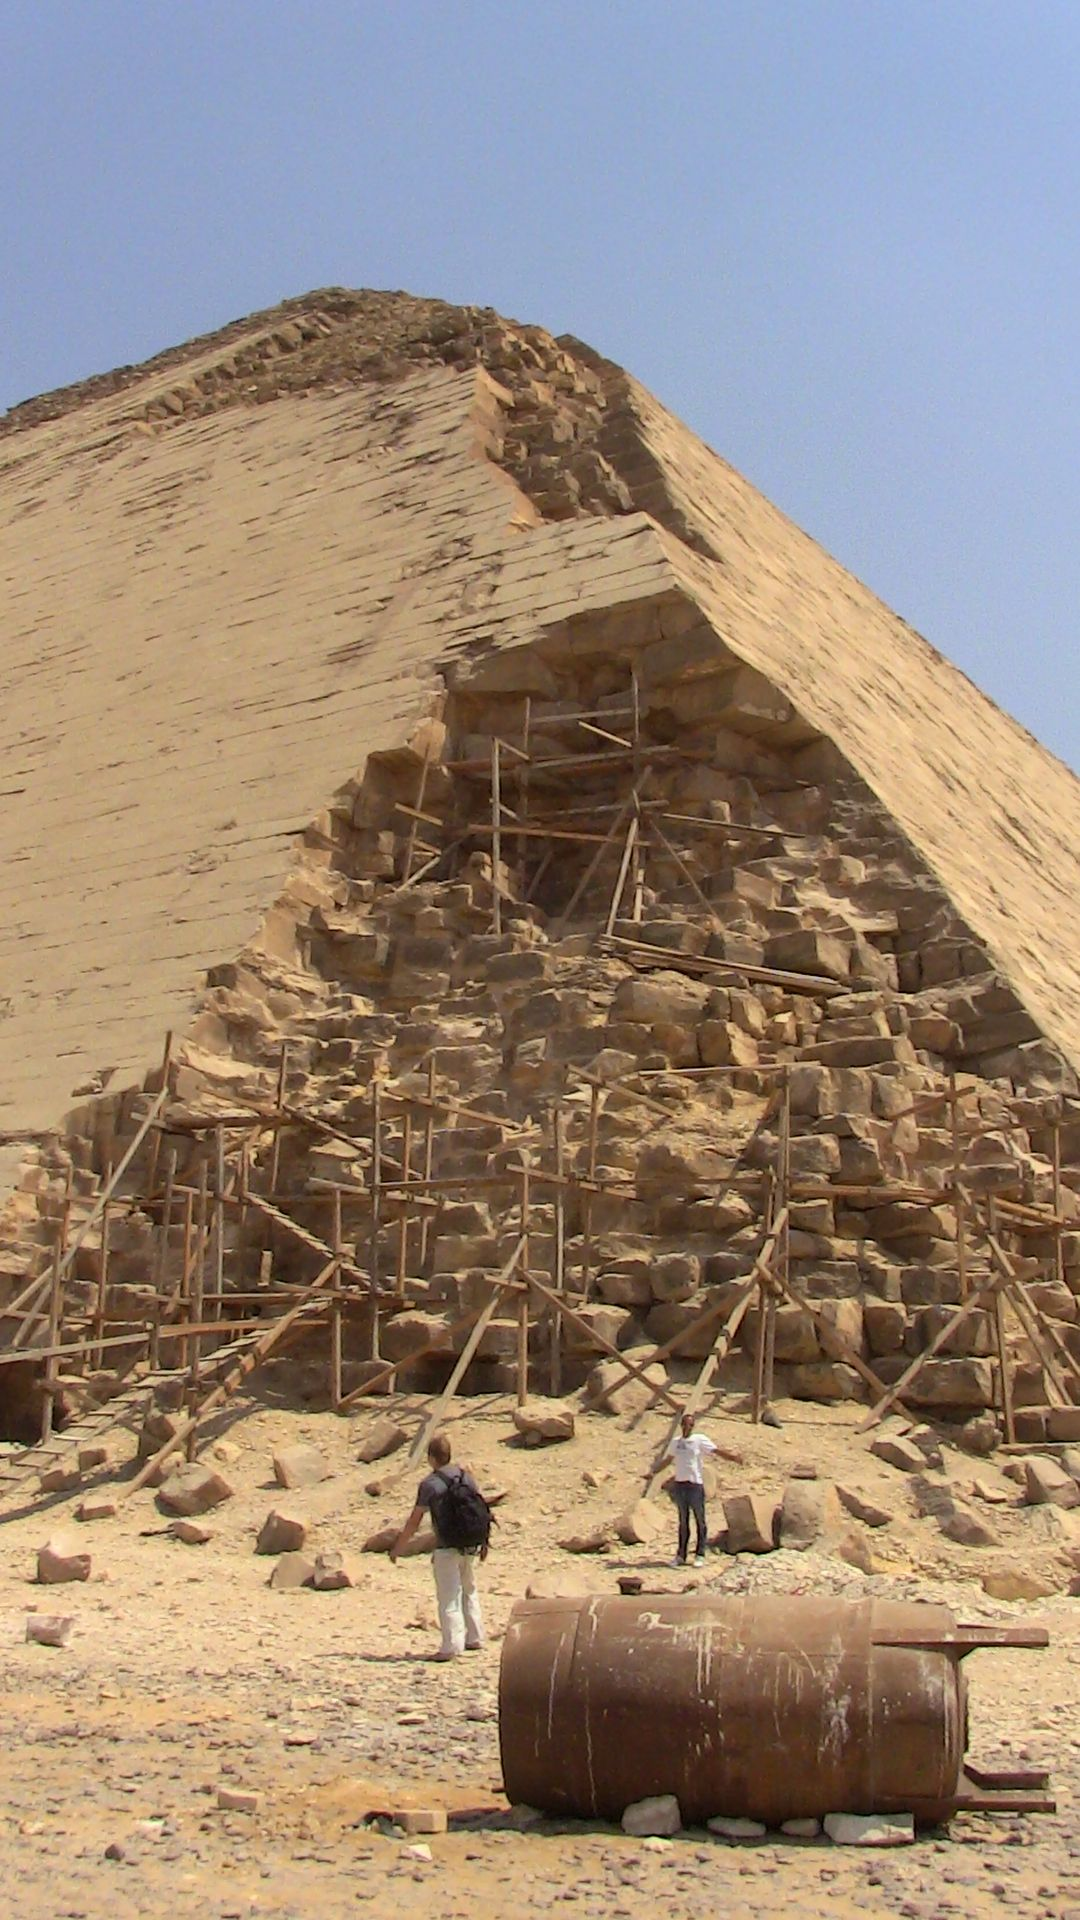 The Bent Pyramid Is An Ancient Egyptian Pyramid Located At